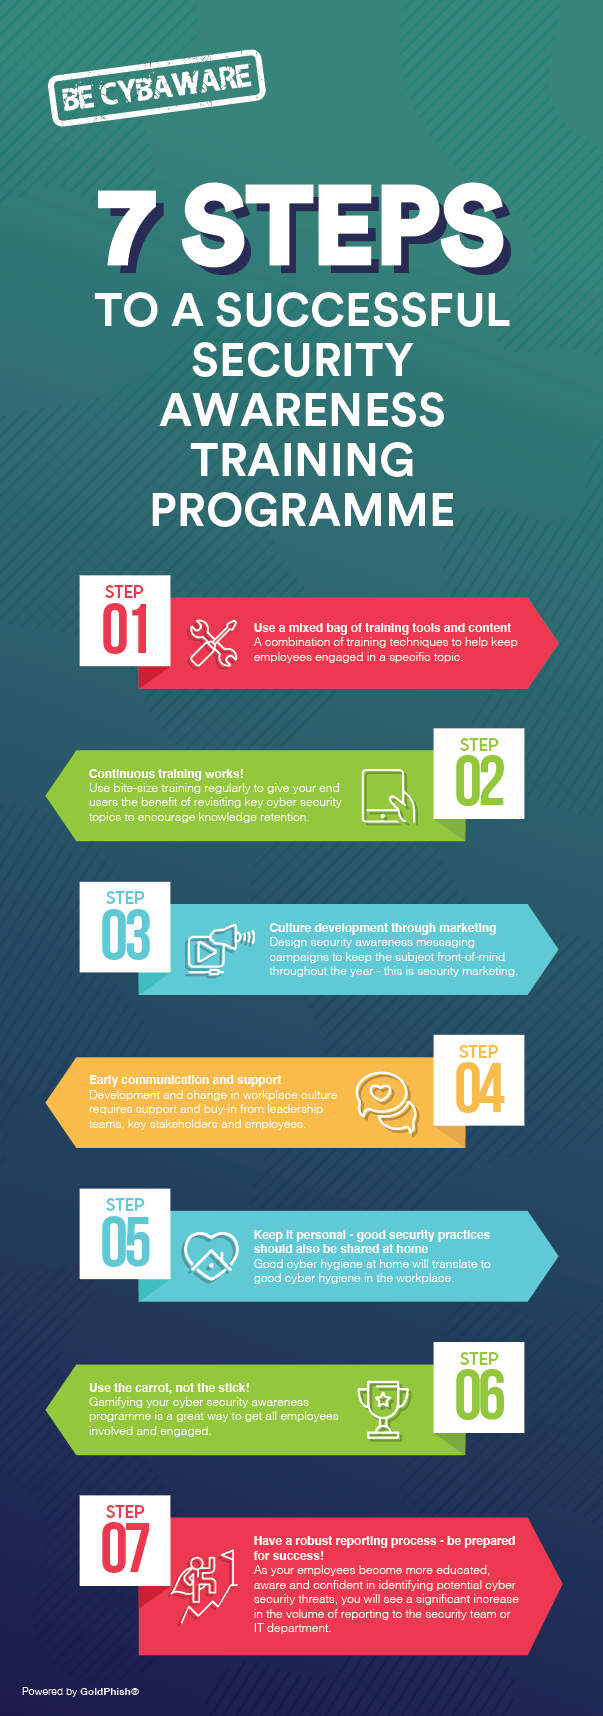 7 Steps To A Successful Security Awareness Training Programme Infographic